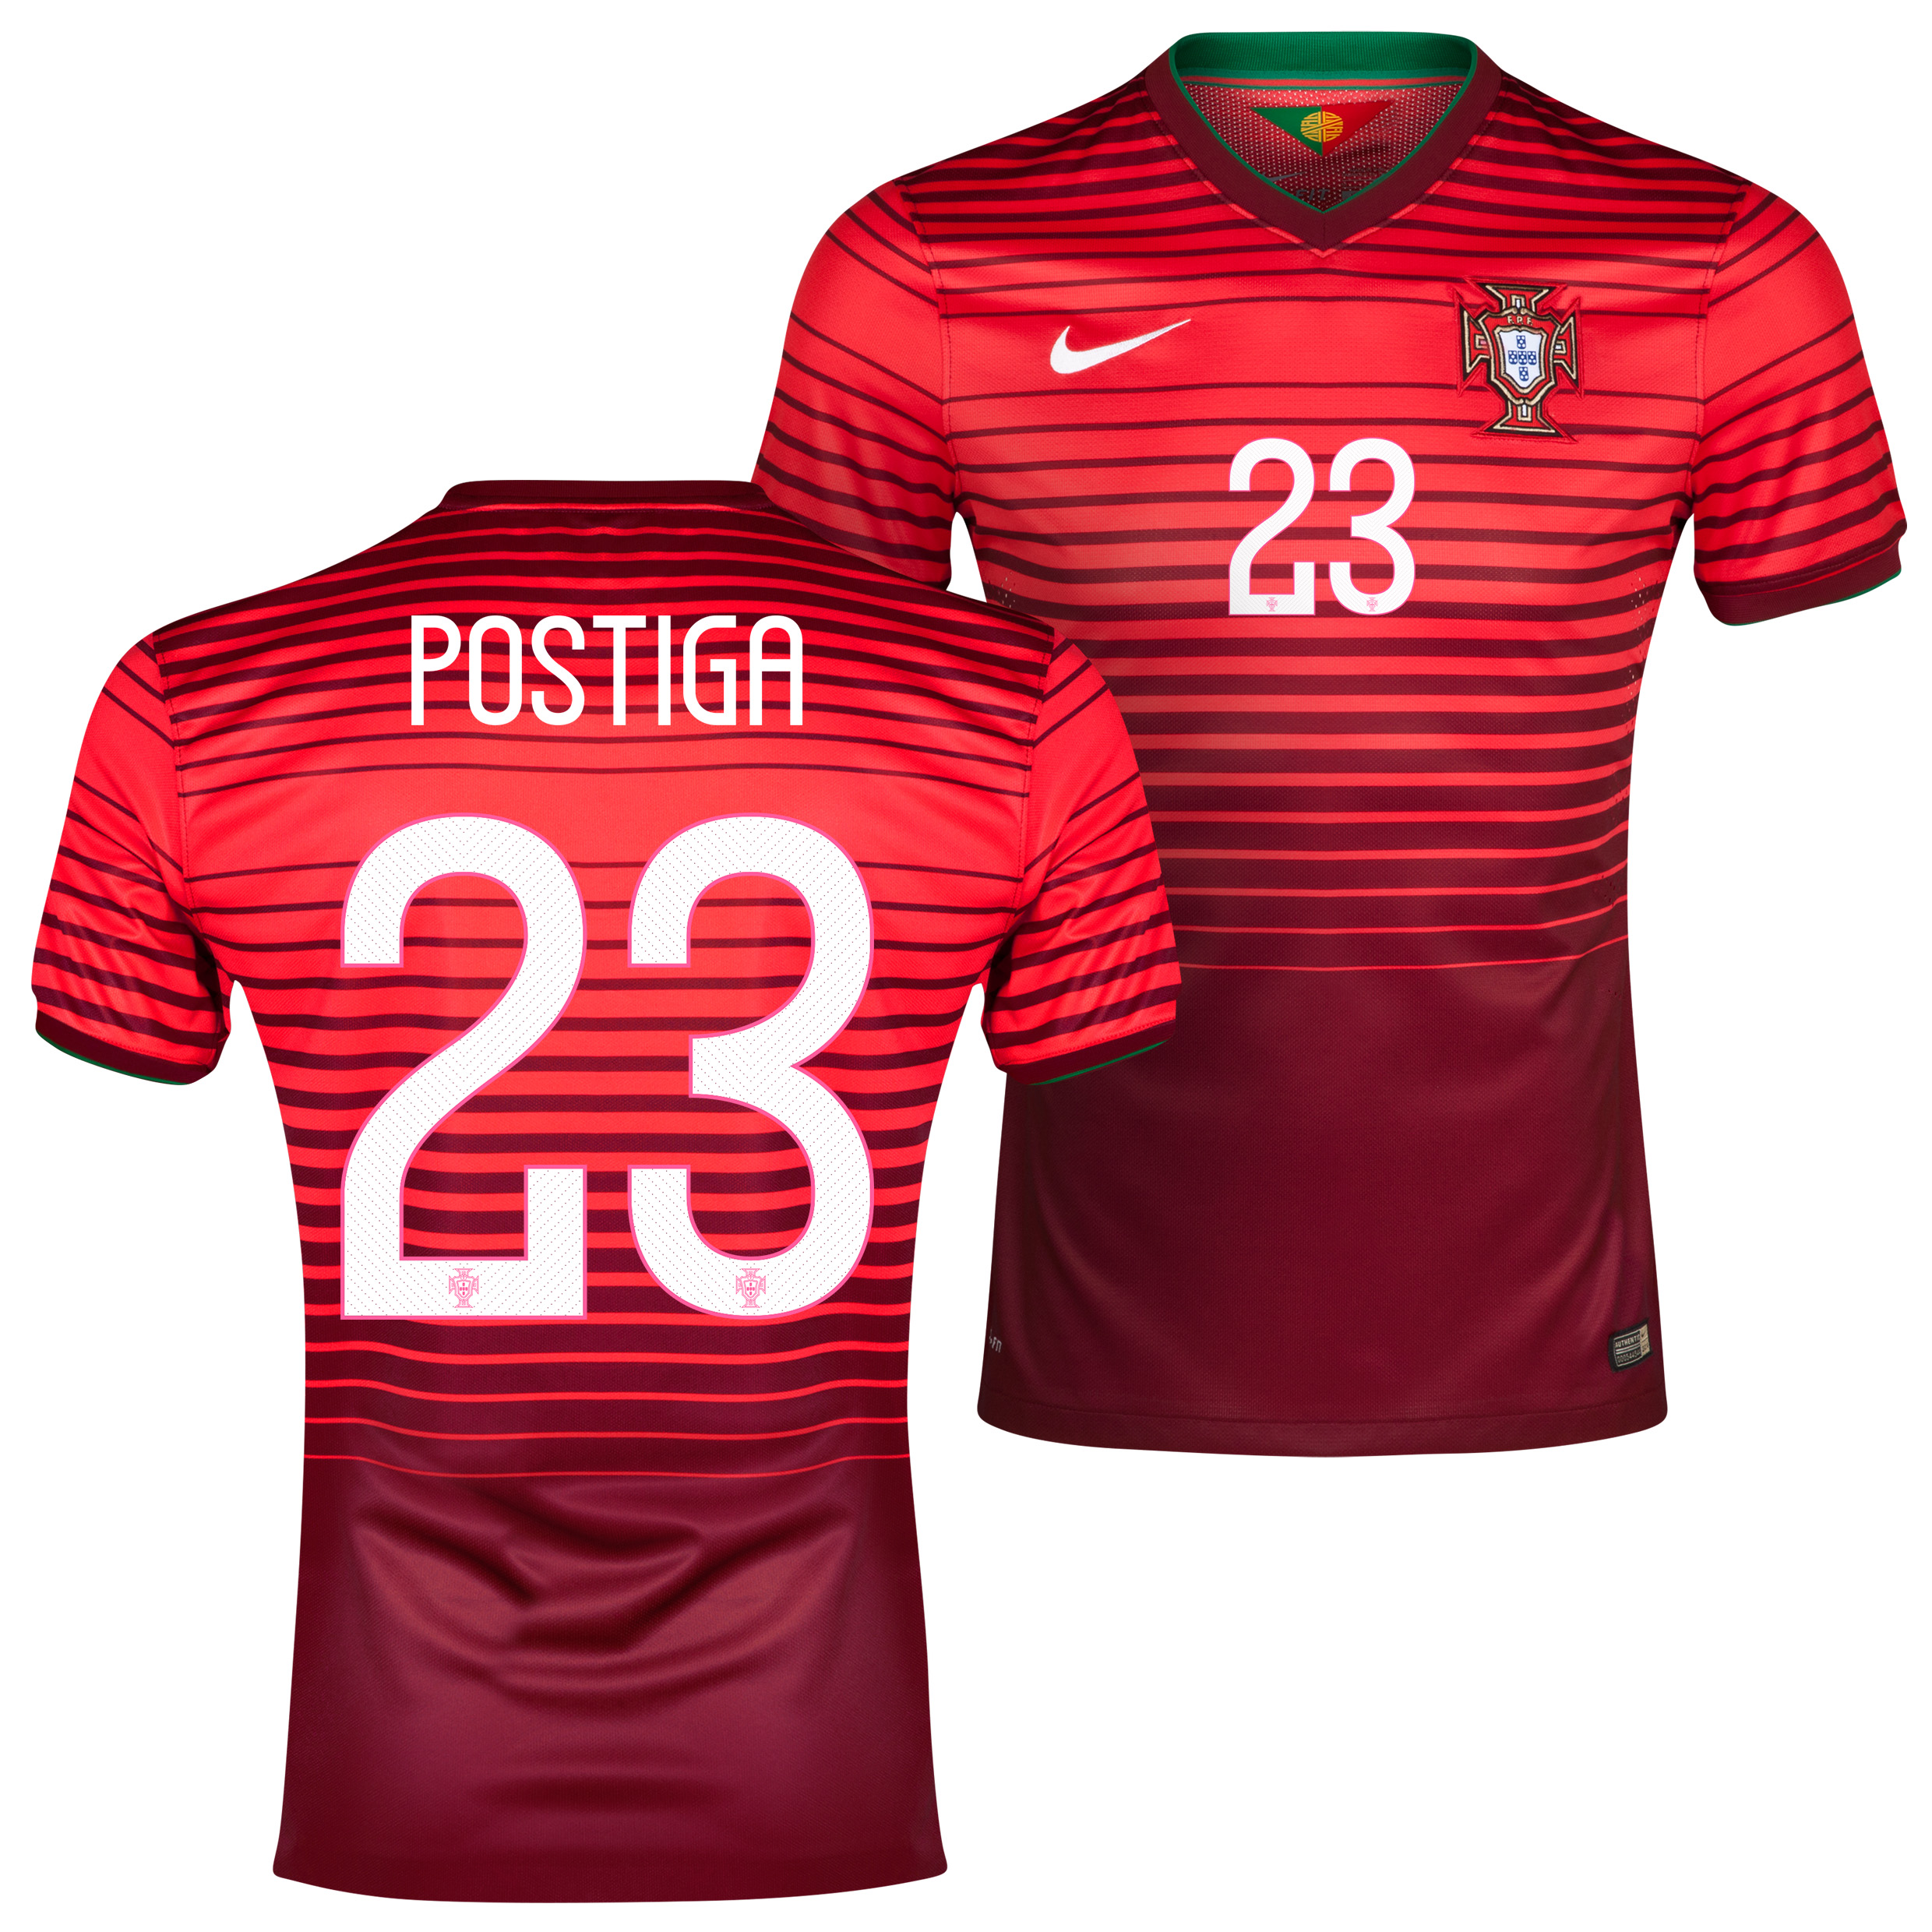 Portugal Match Home Shirt 2013/15 Red with Postiga 23 printing